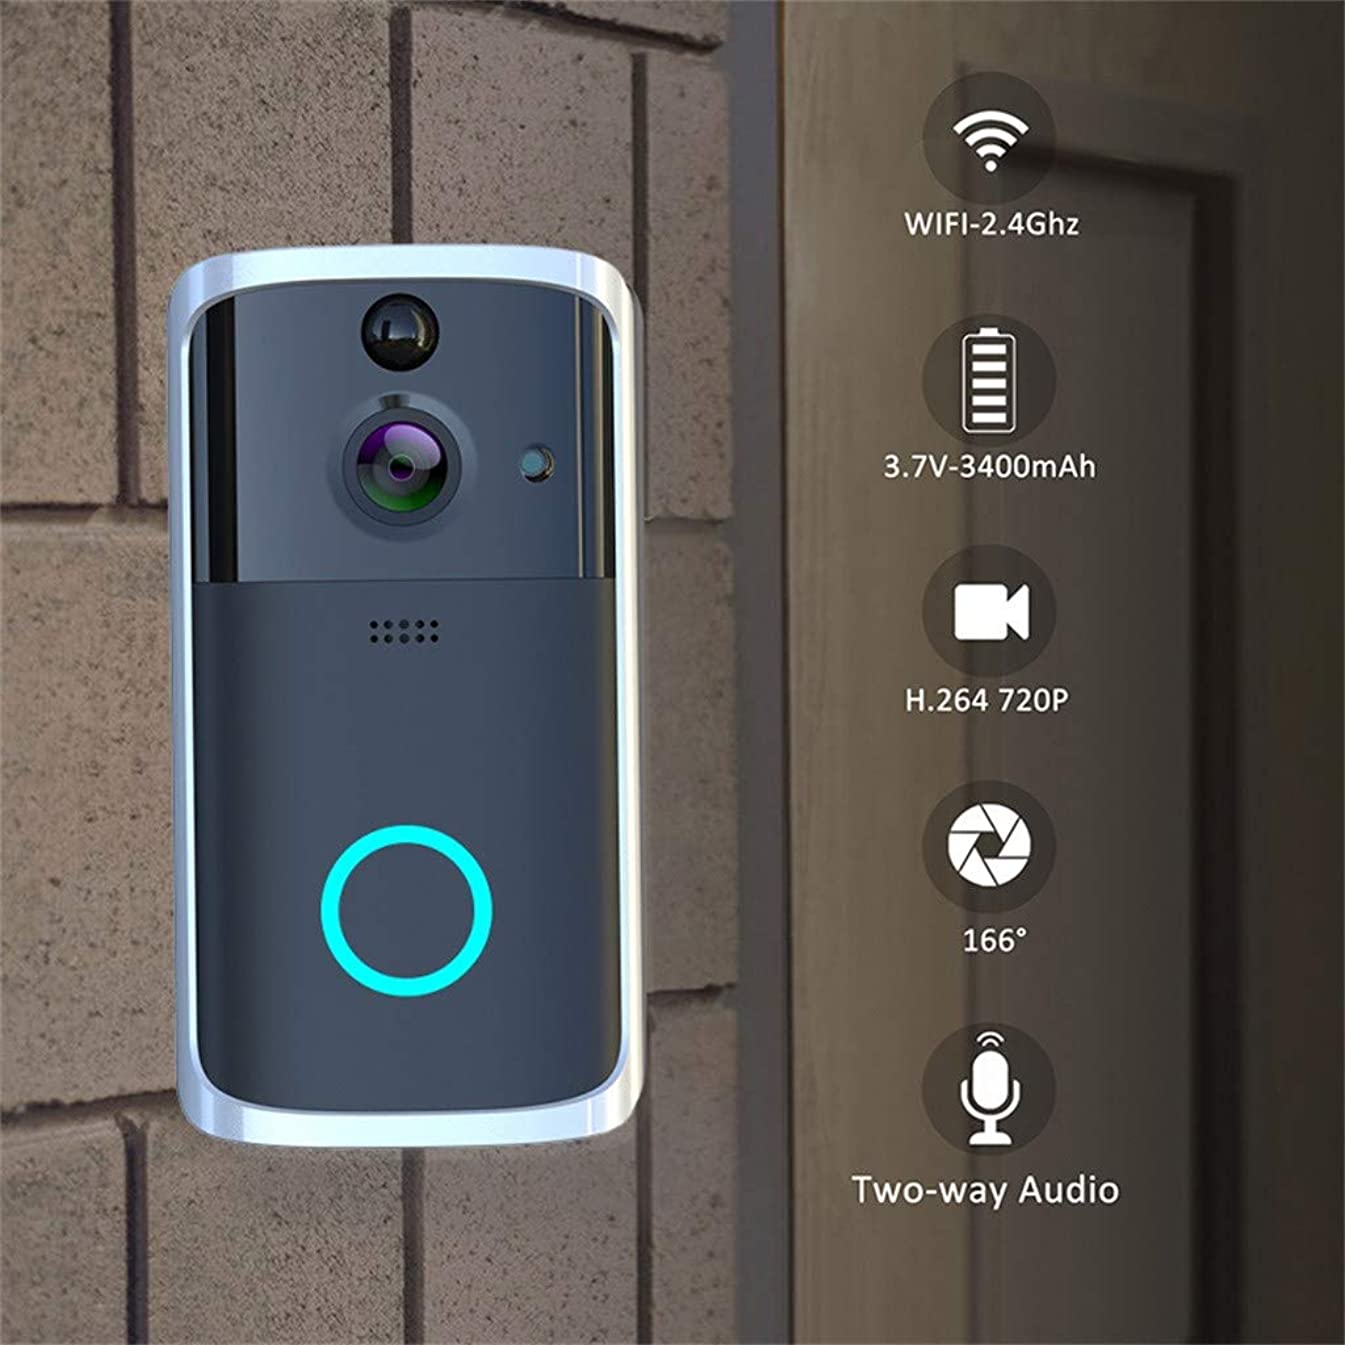 Firespit M7 1080P Smart WIFI Security Doorbell Wireless Video Phone Camera Night Vision